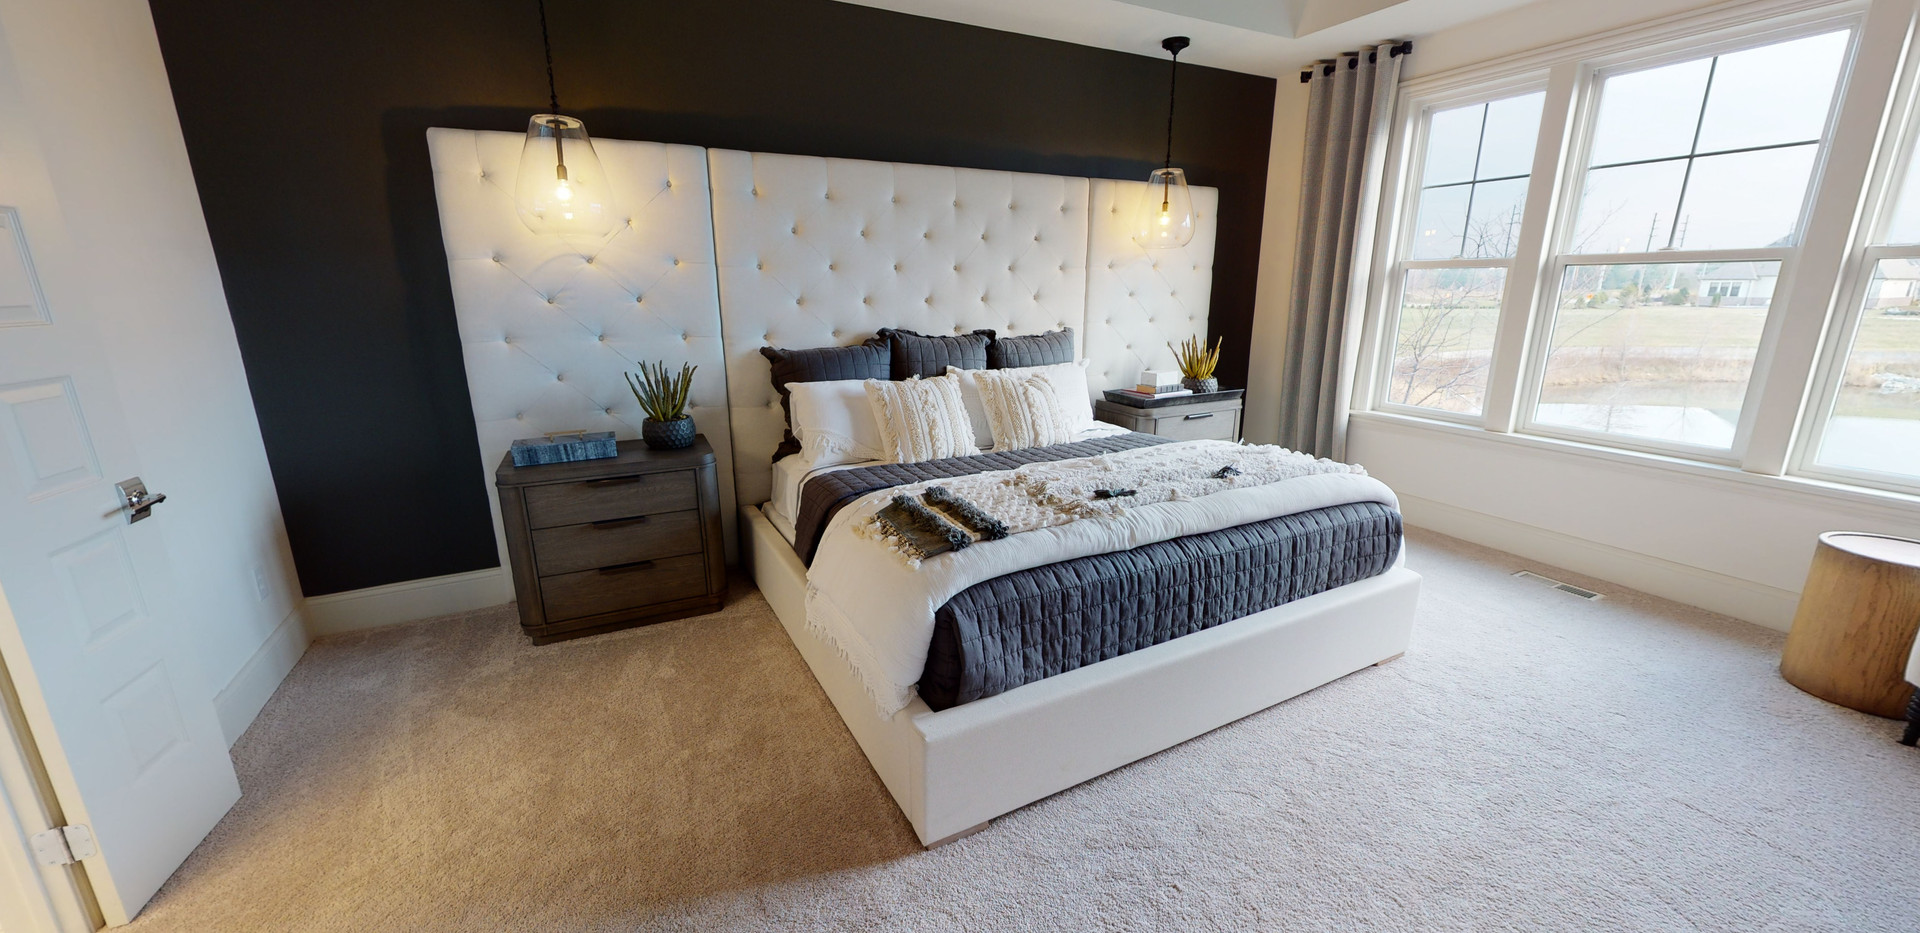 White master bedroom with white queen size bed in front of an oversized white headboard. Black accent wall behind headboard